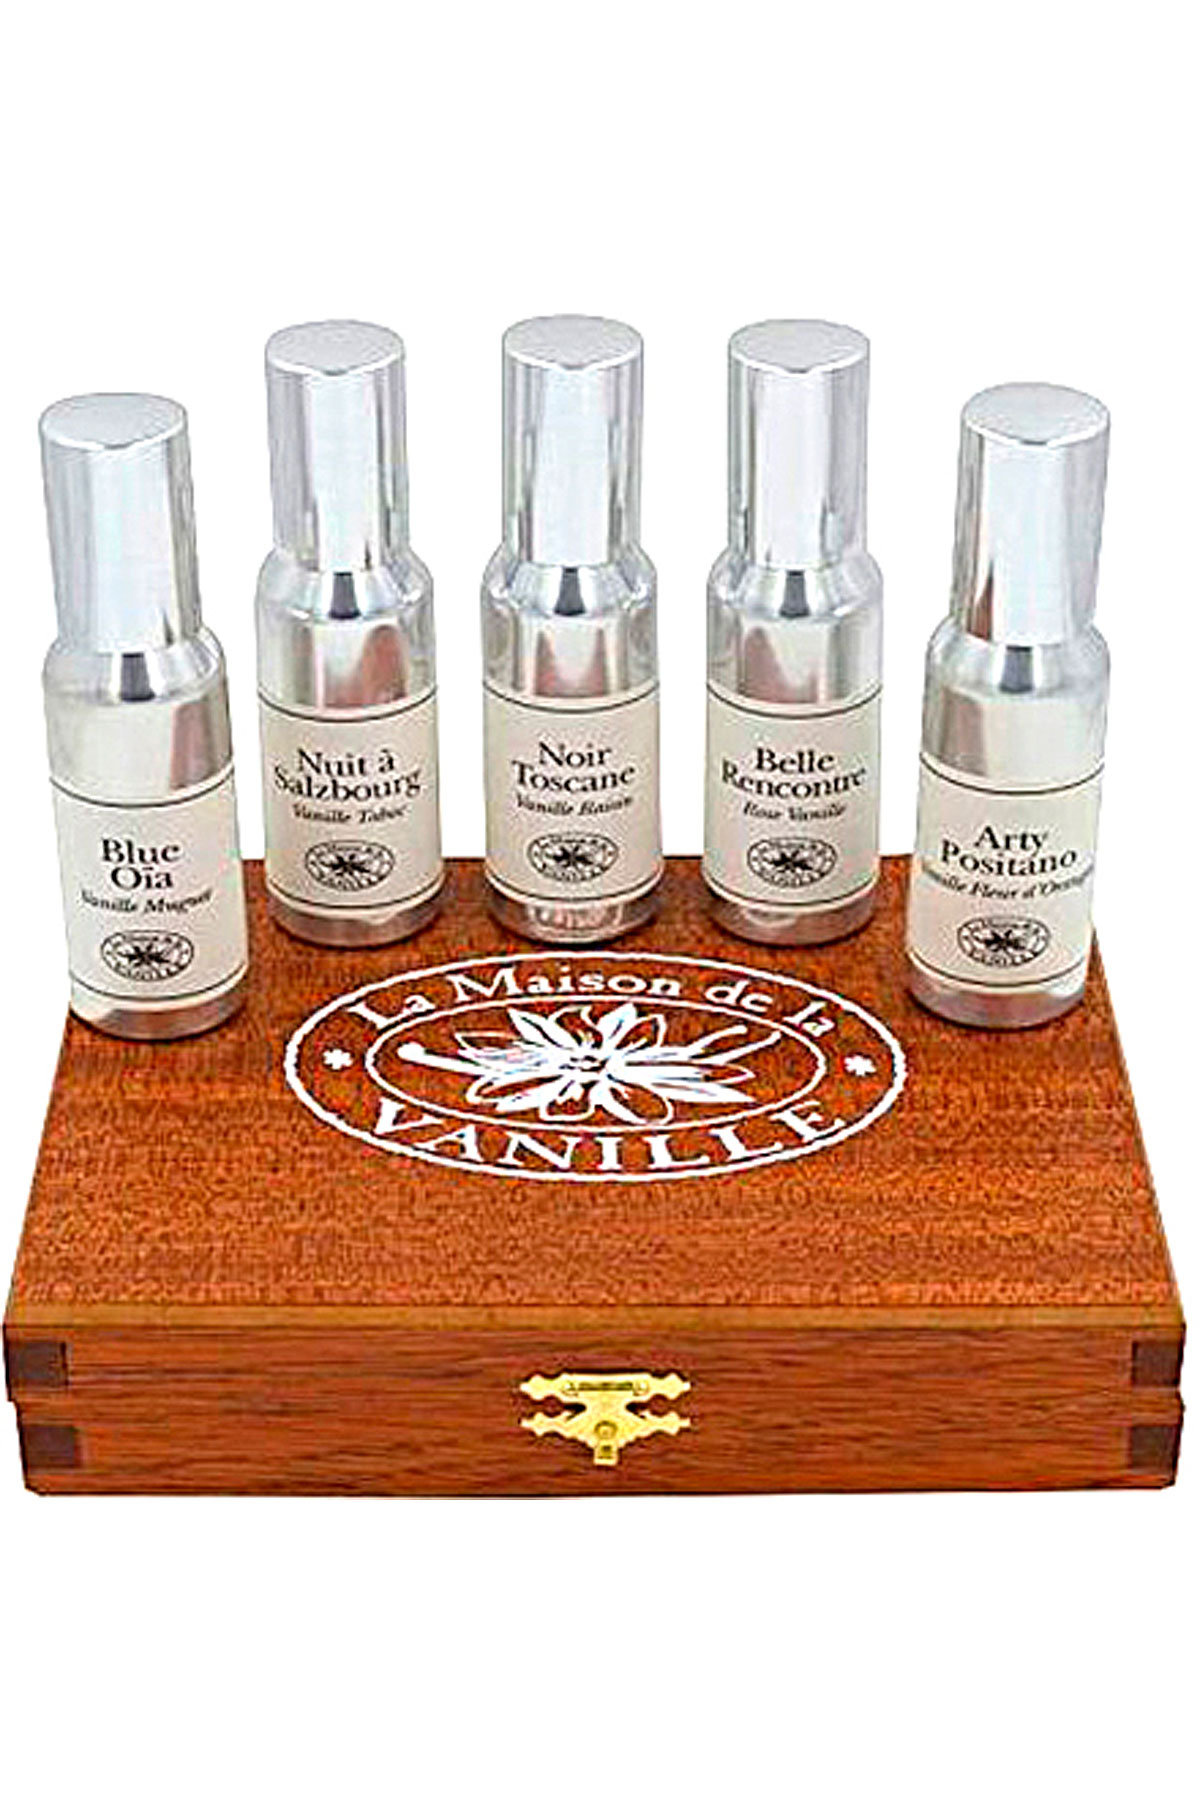 La Maison de la Vanille Fragrances for Women On Sale, Continental Spirit Vanilles Du Monde - Luxury Wooden Coffret - 5 X 30 Ml, 2019, 5 x 30 ml